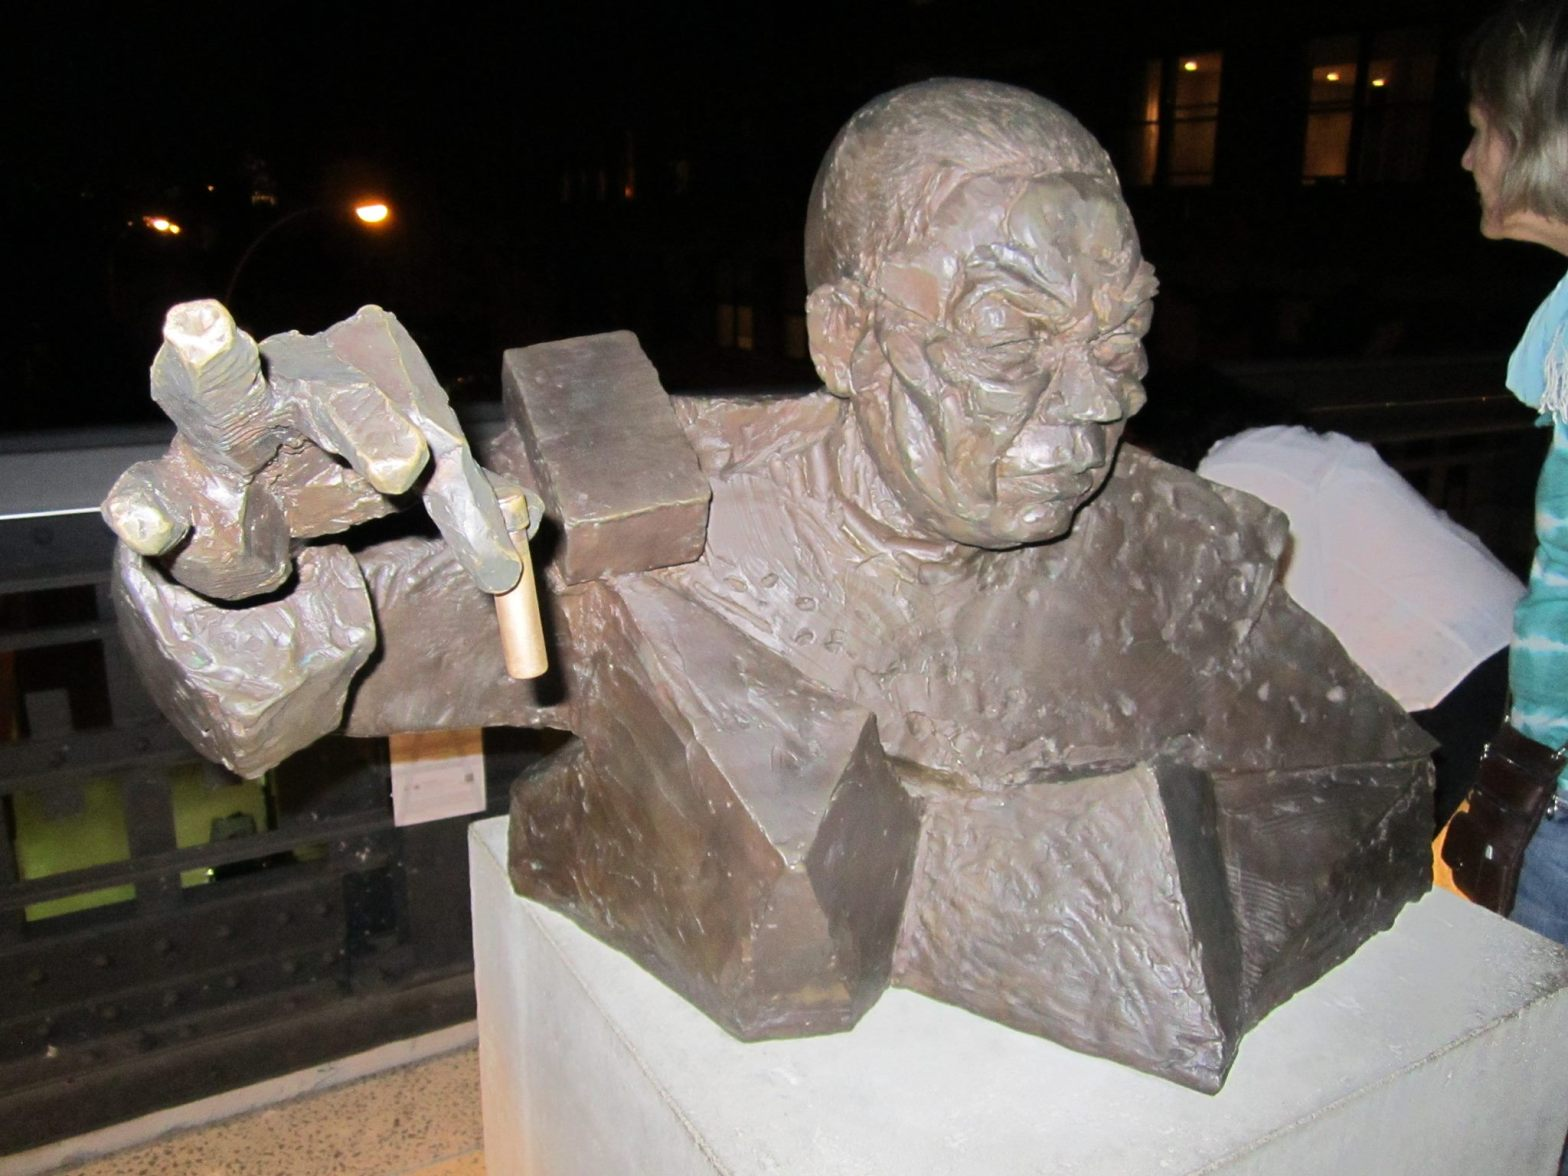 Sculpture of Powell and his UN Assembly speech about Iraq, by sculptor Goshka Macuga.